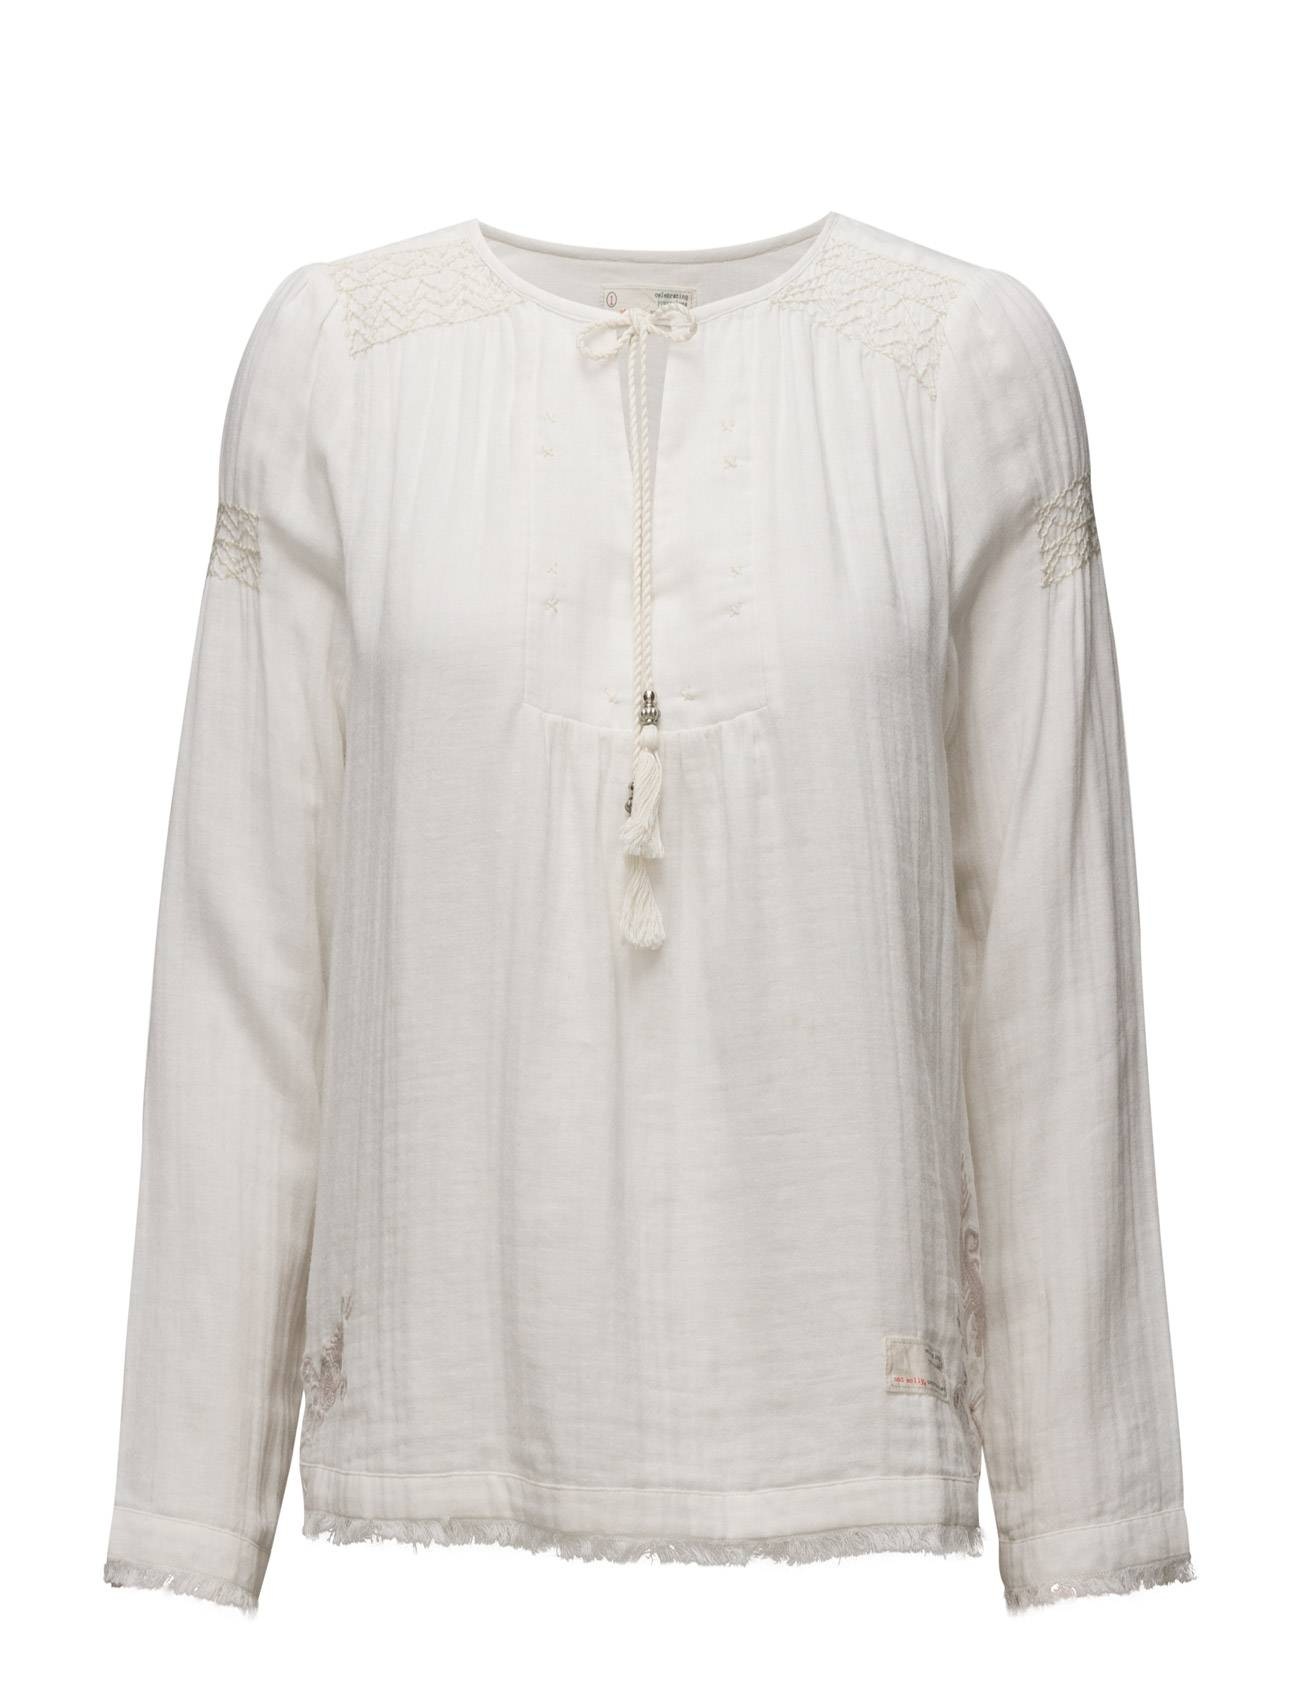 ODD MOLLY Lead The Way Blouse